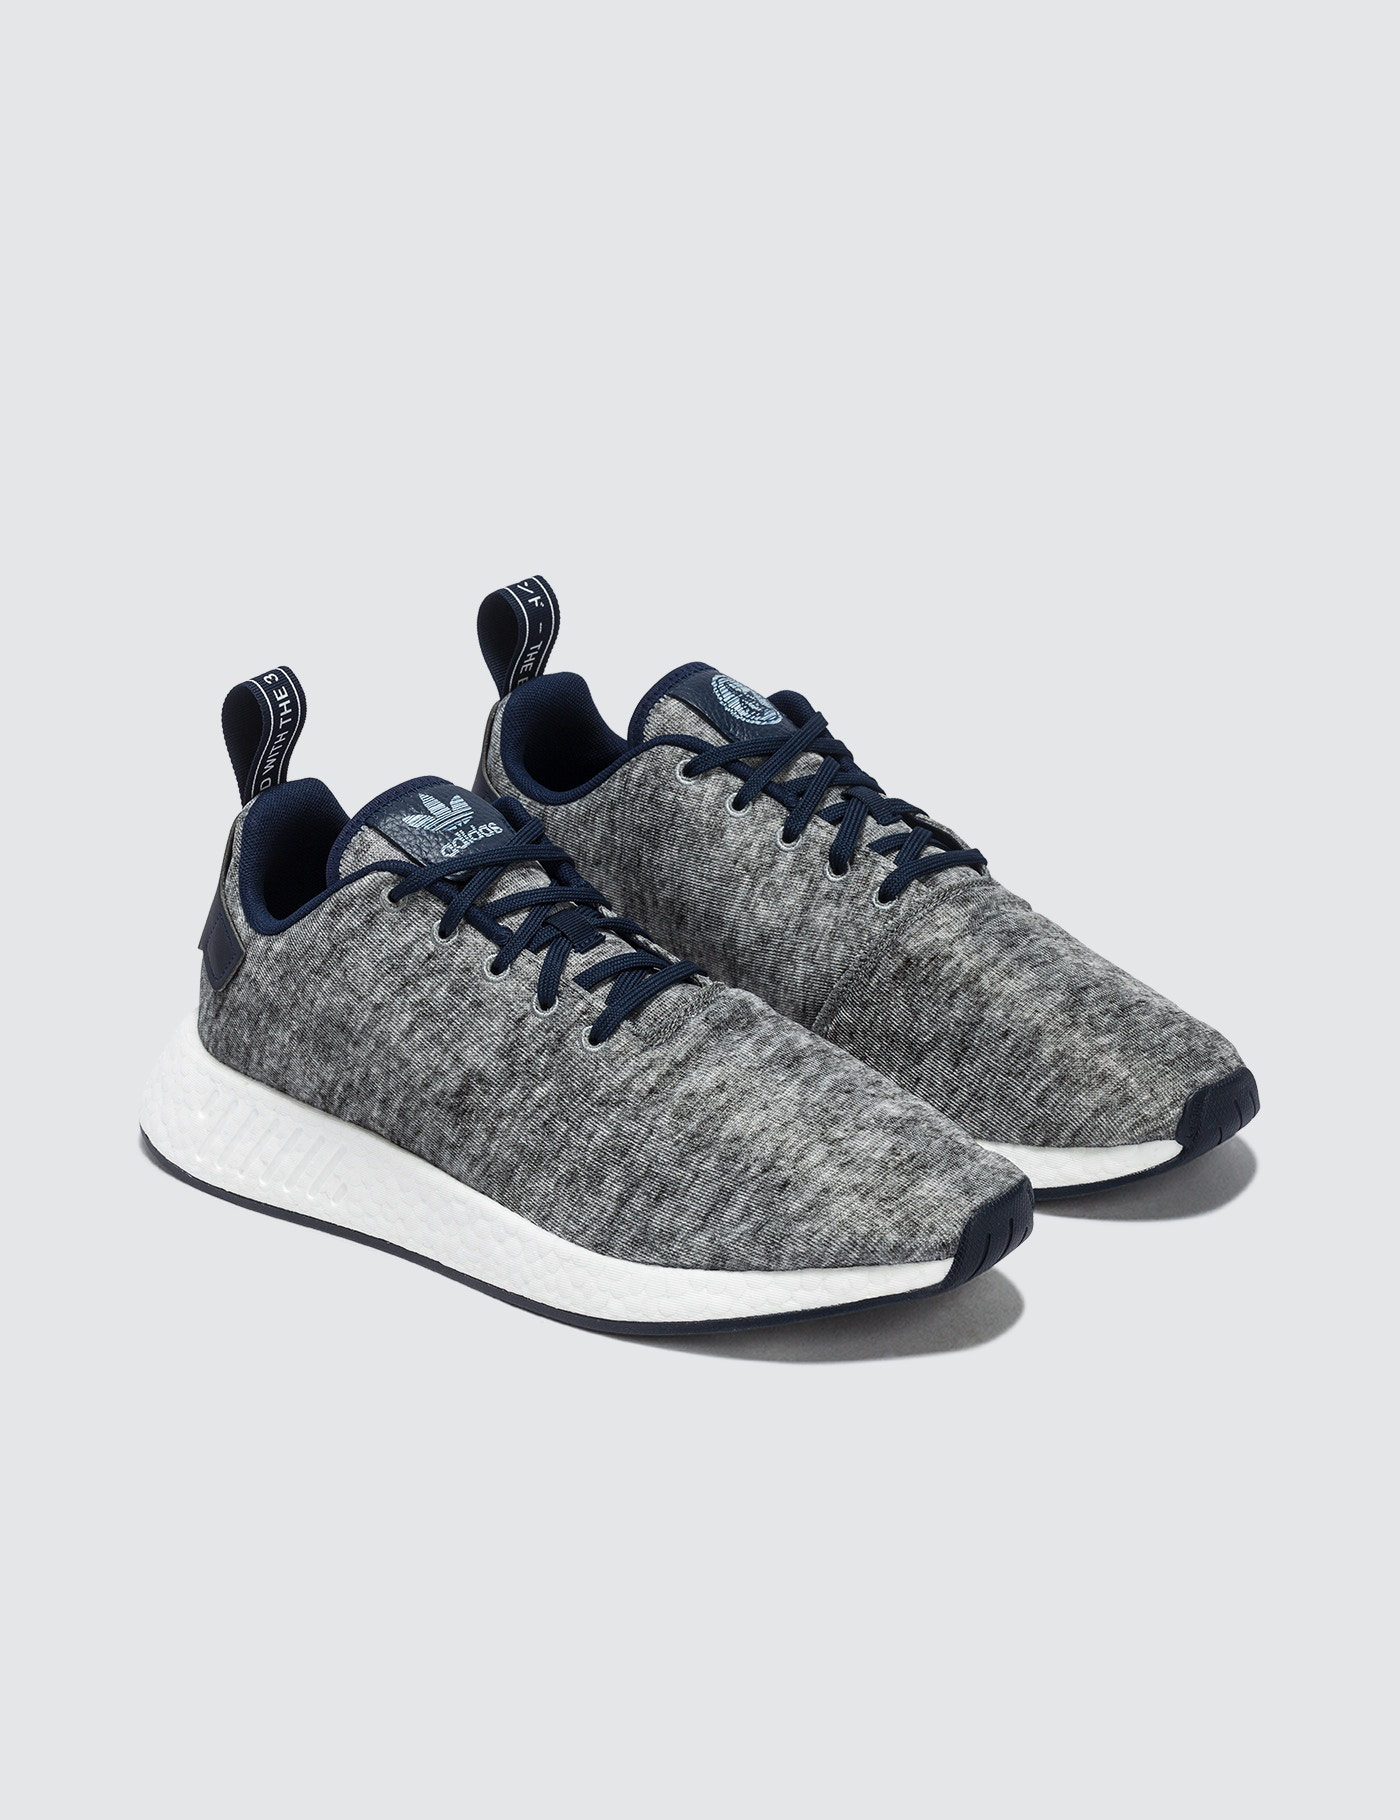 lower price with 3be3f 58f0d United Arrows & Sons x Adidas NMD R2 Runner UAS, Adidas Originals